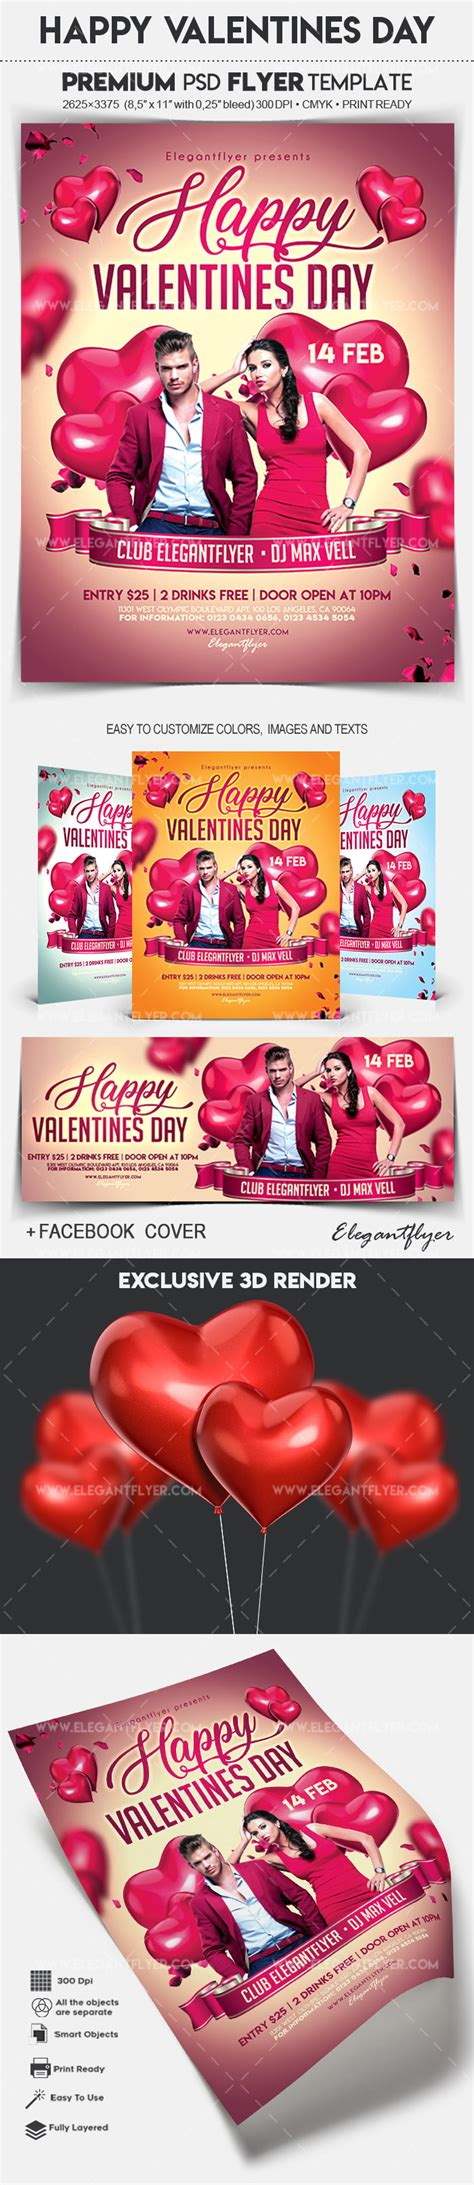 valentines day card template psd flyer for valentines day by elegantflyer